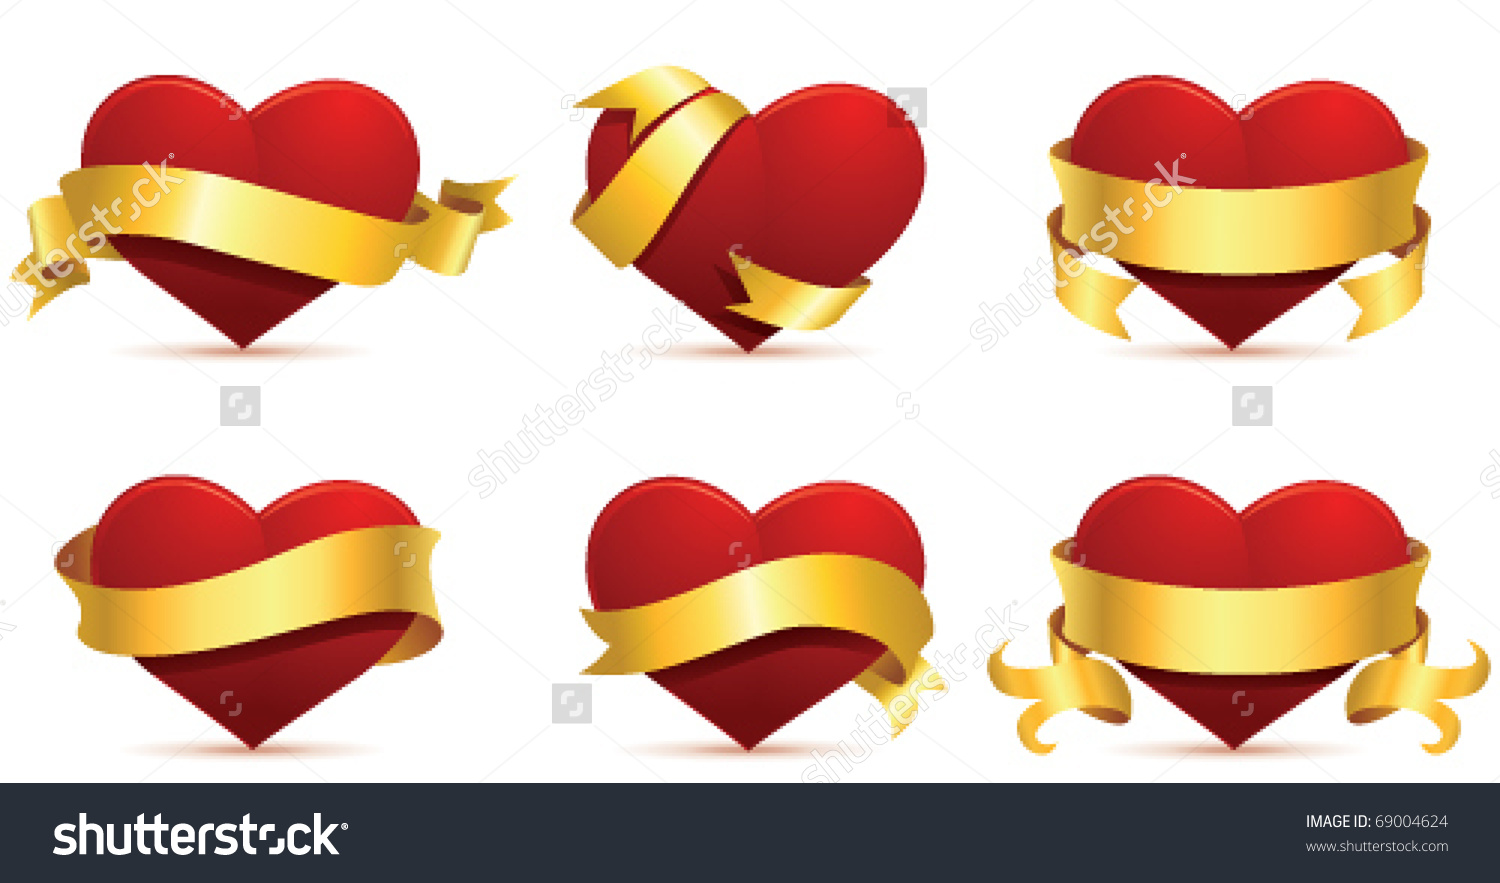 heart with banner clipart clipground